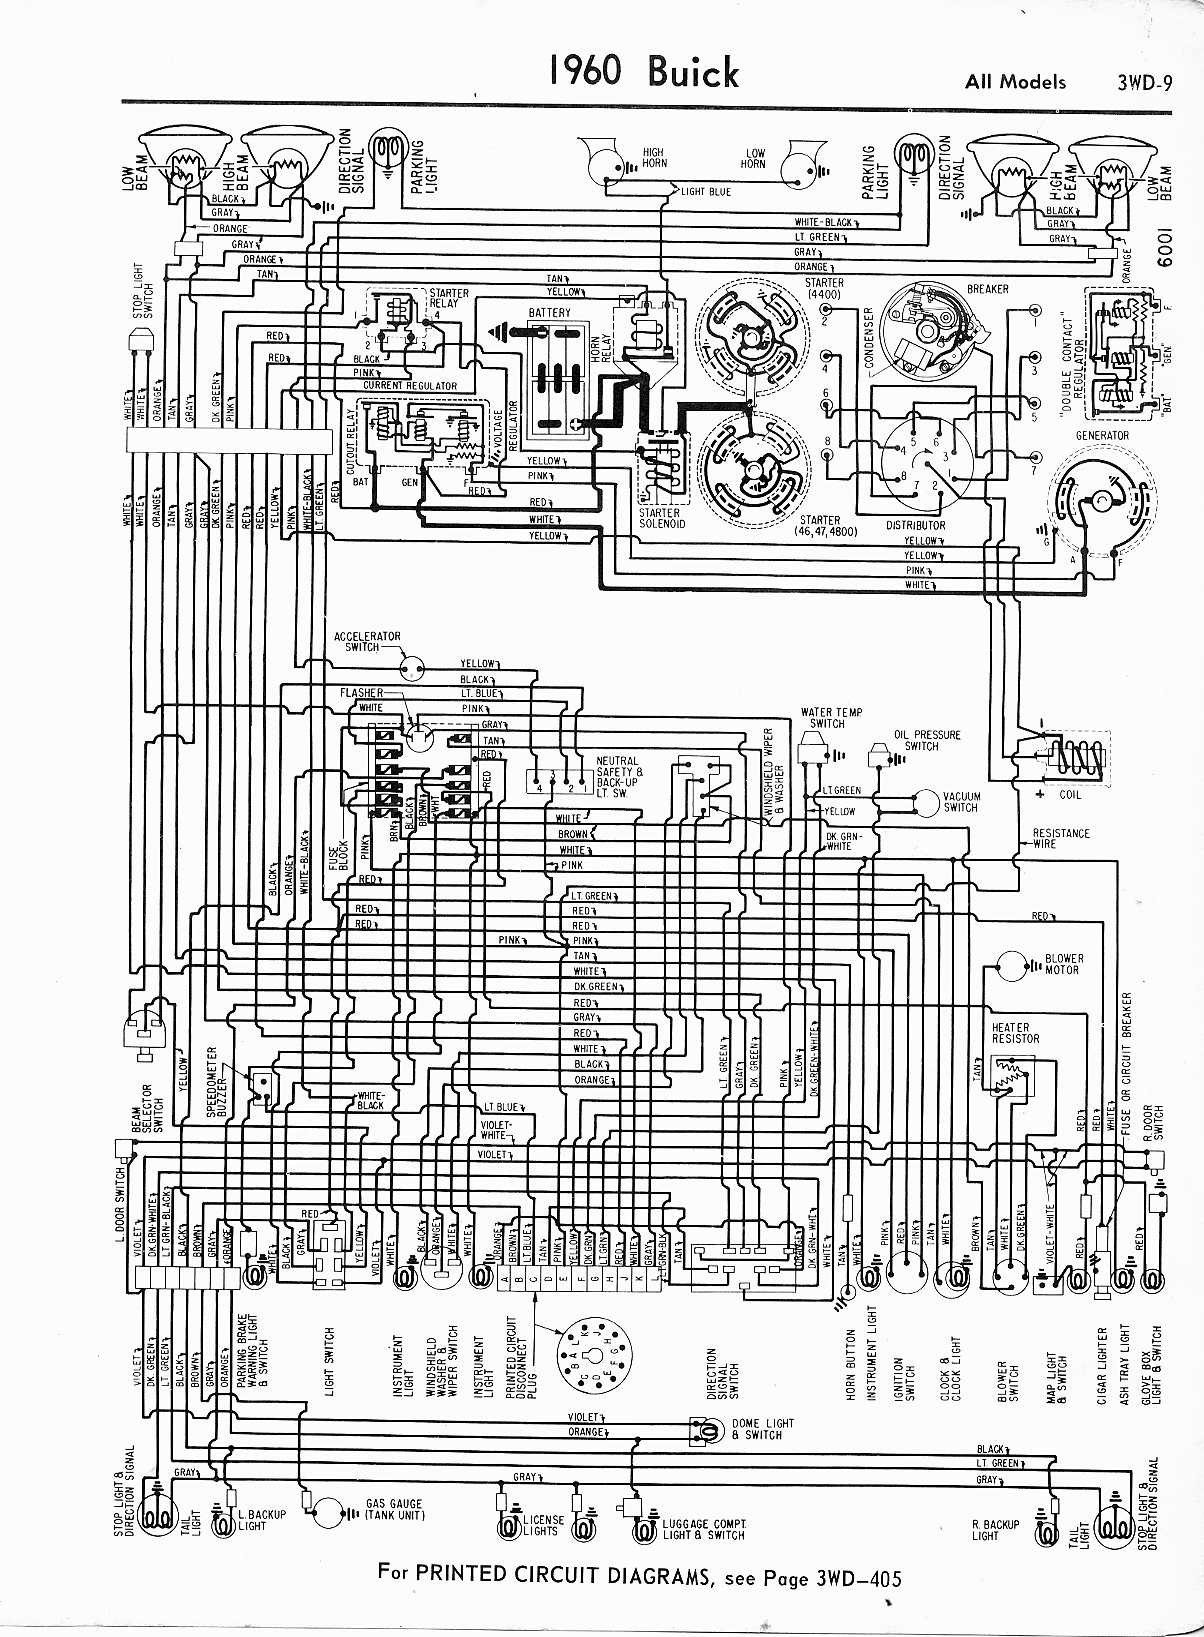 hight resolution of 1960 buick wiring diagram